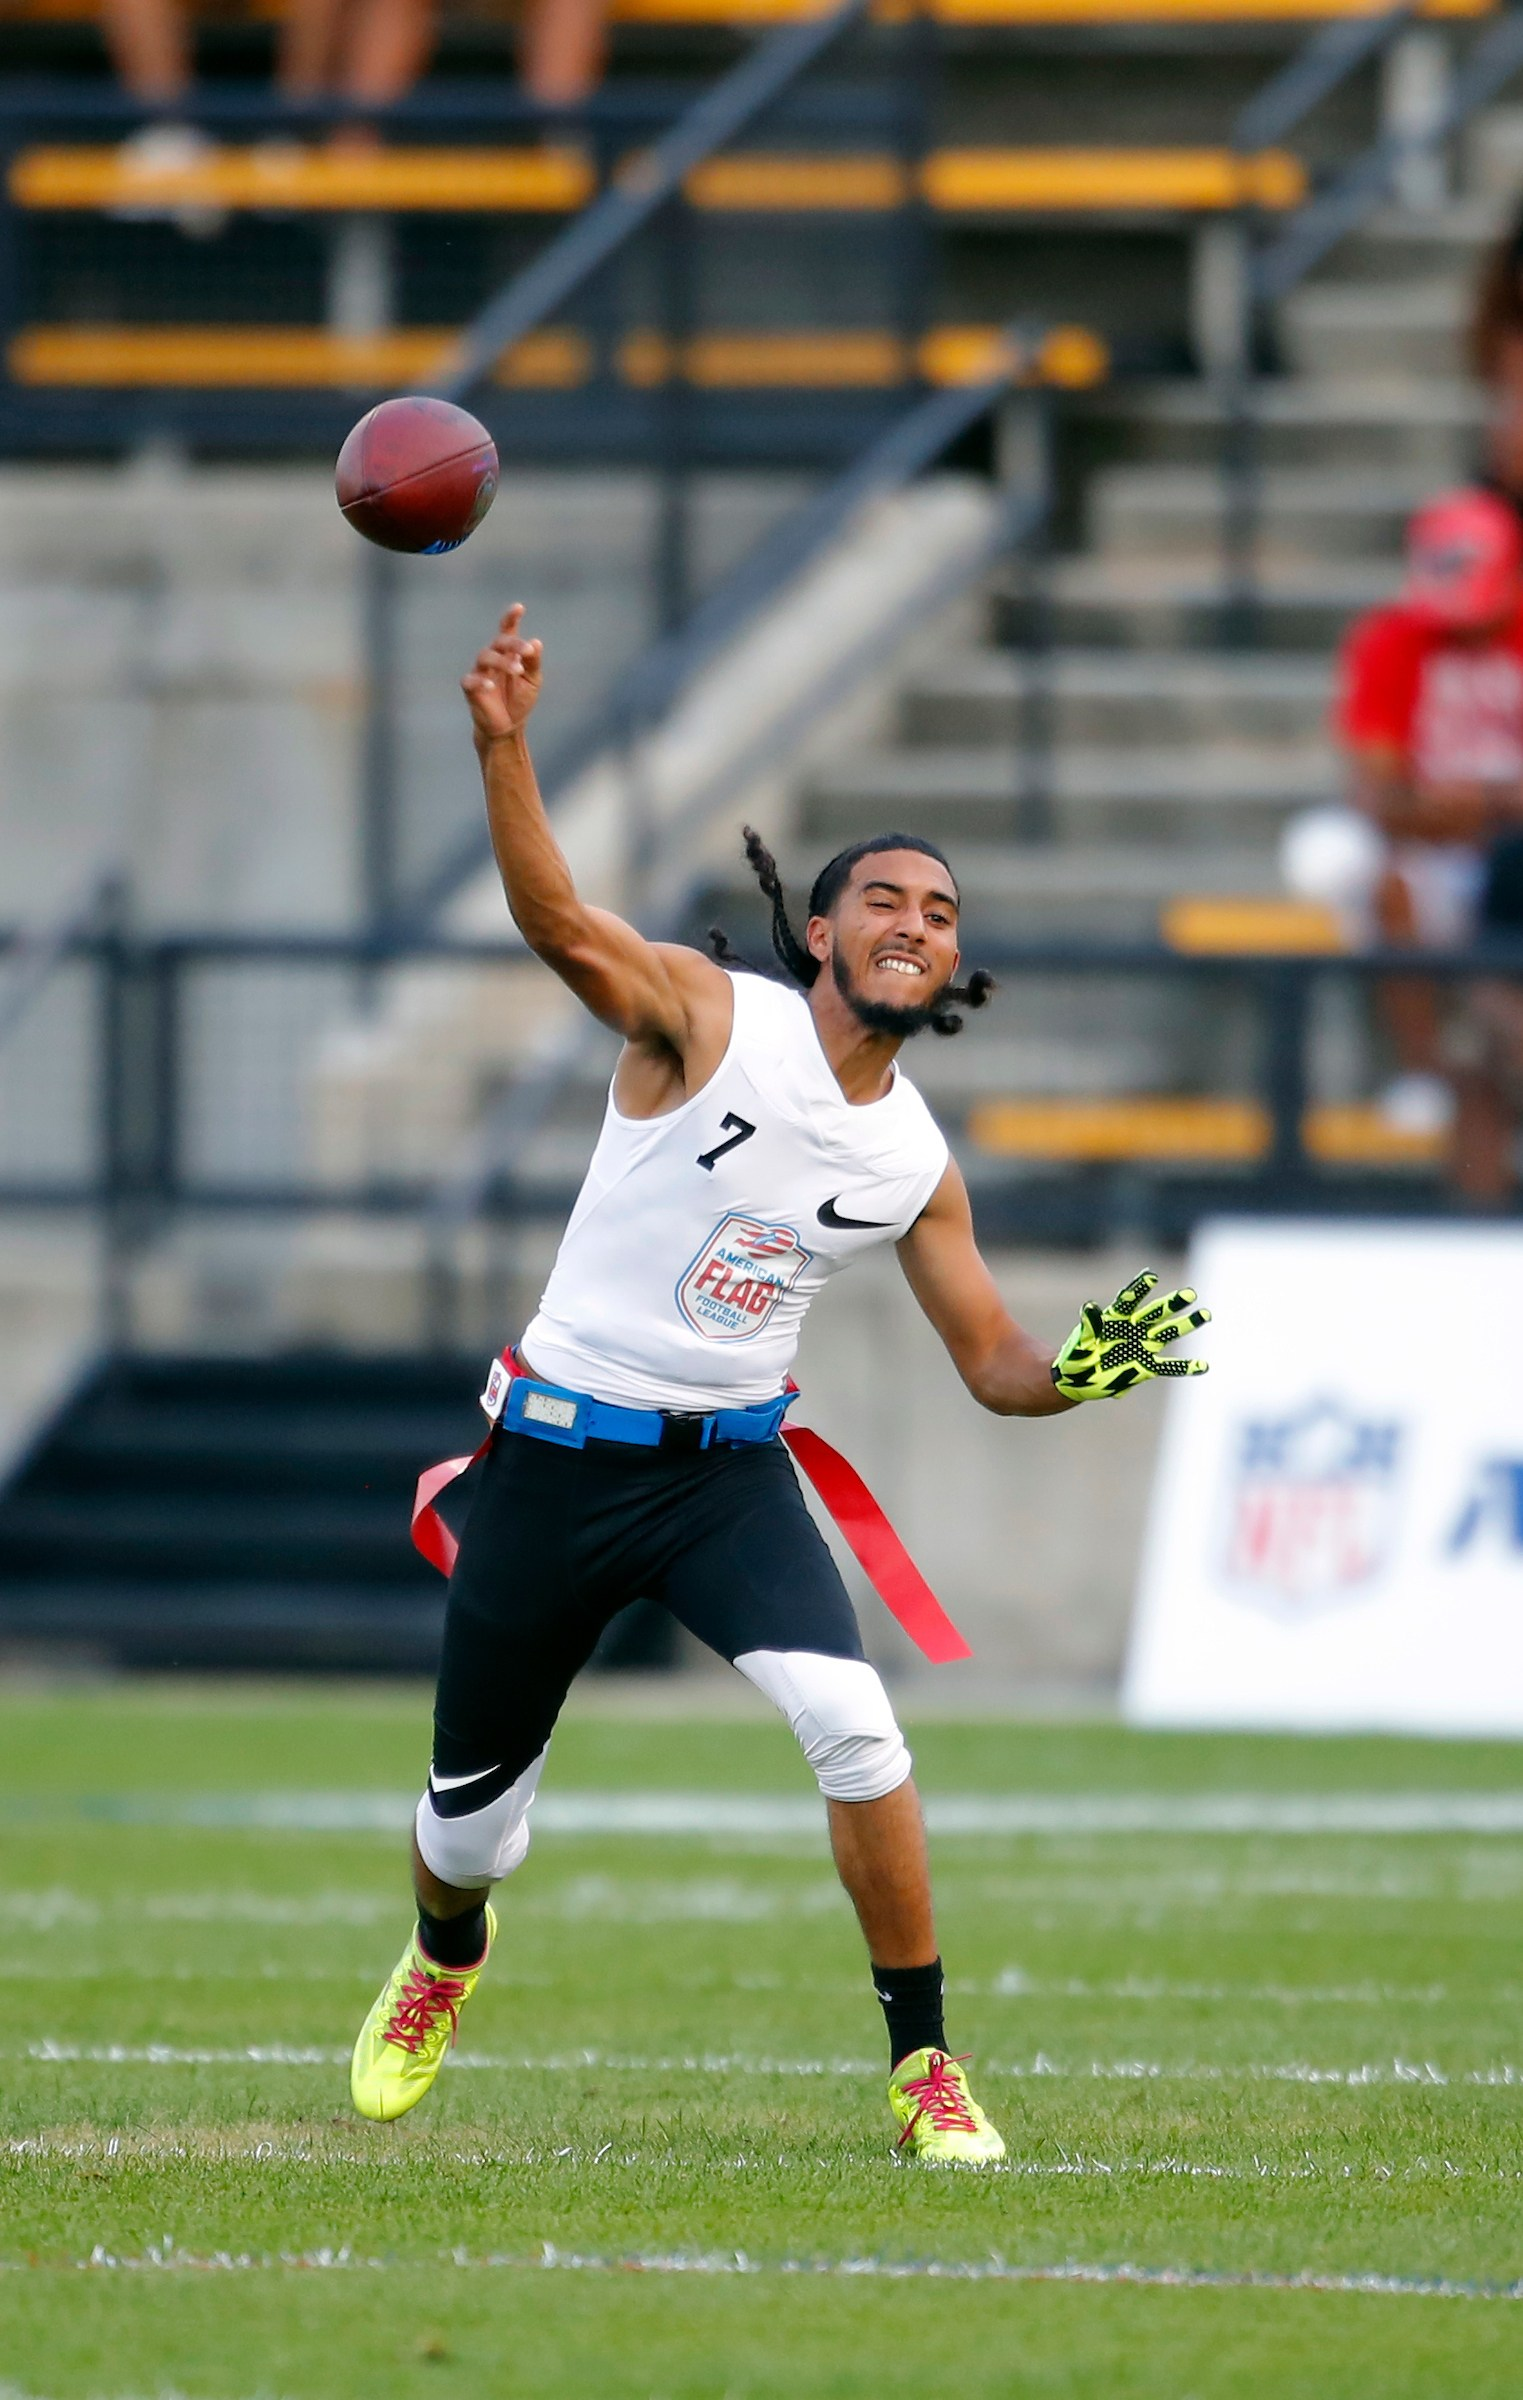 Fighting Cancer's Darrell Doucette passes during a semifinal round game against Primetime at the American Flag Football League (AFFL) U.S. Open of Football tournament, Saturday, July 7, 2018 in Kennesaw, Ga. (Todd Kirkland/AP Images for American Flag Football League)